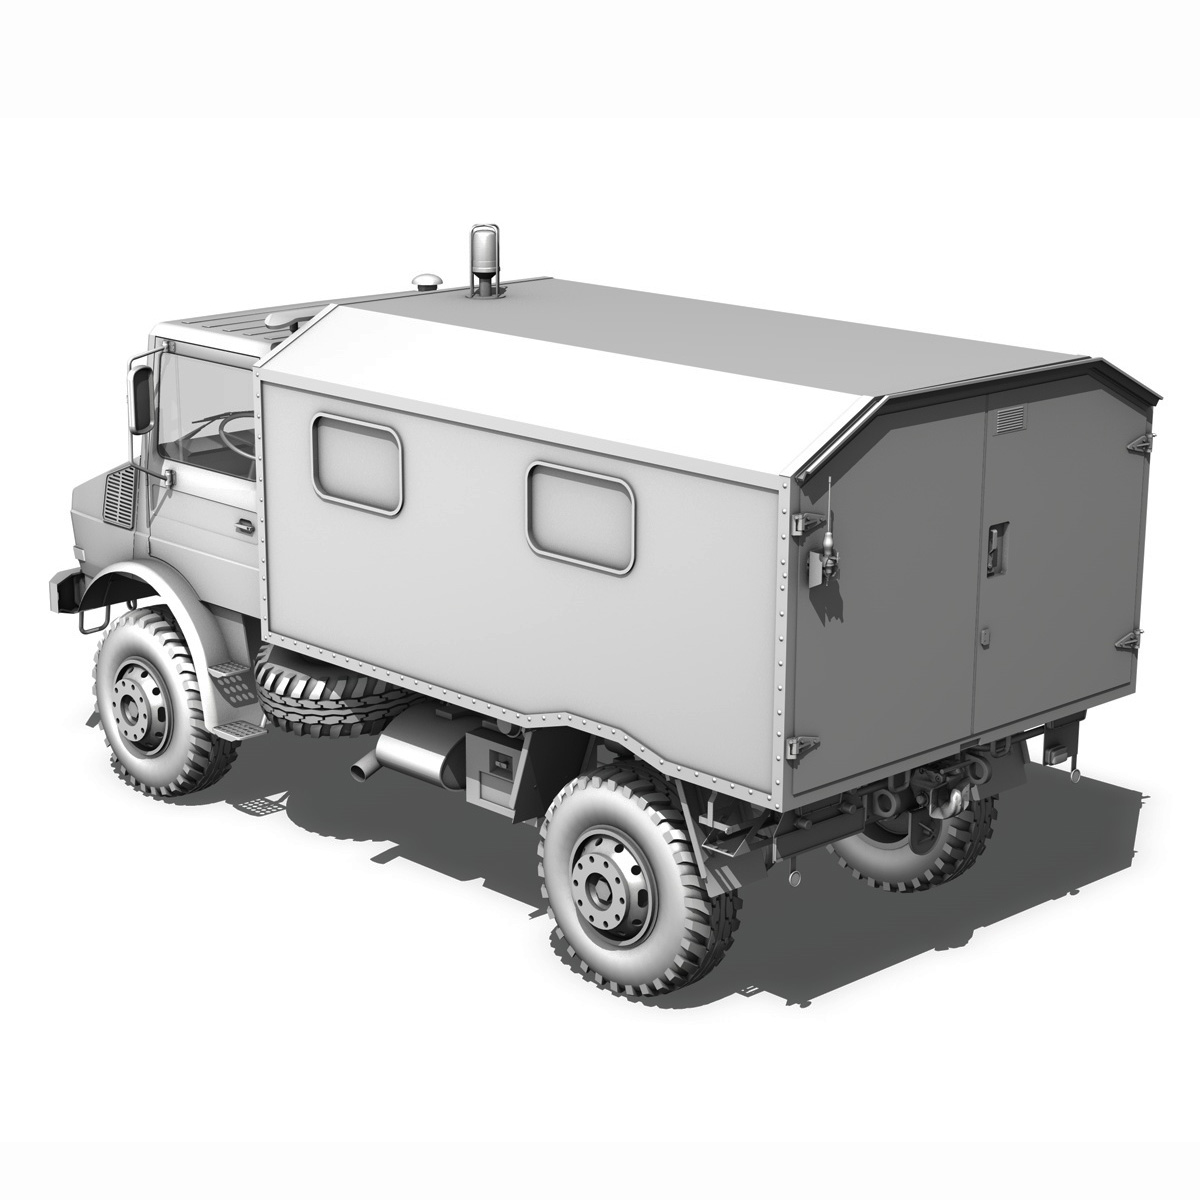 mercedes benz unimog u1300l – ambulance trailer 3d model 3ds fbx c4d lwo obj 189599